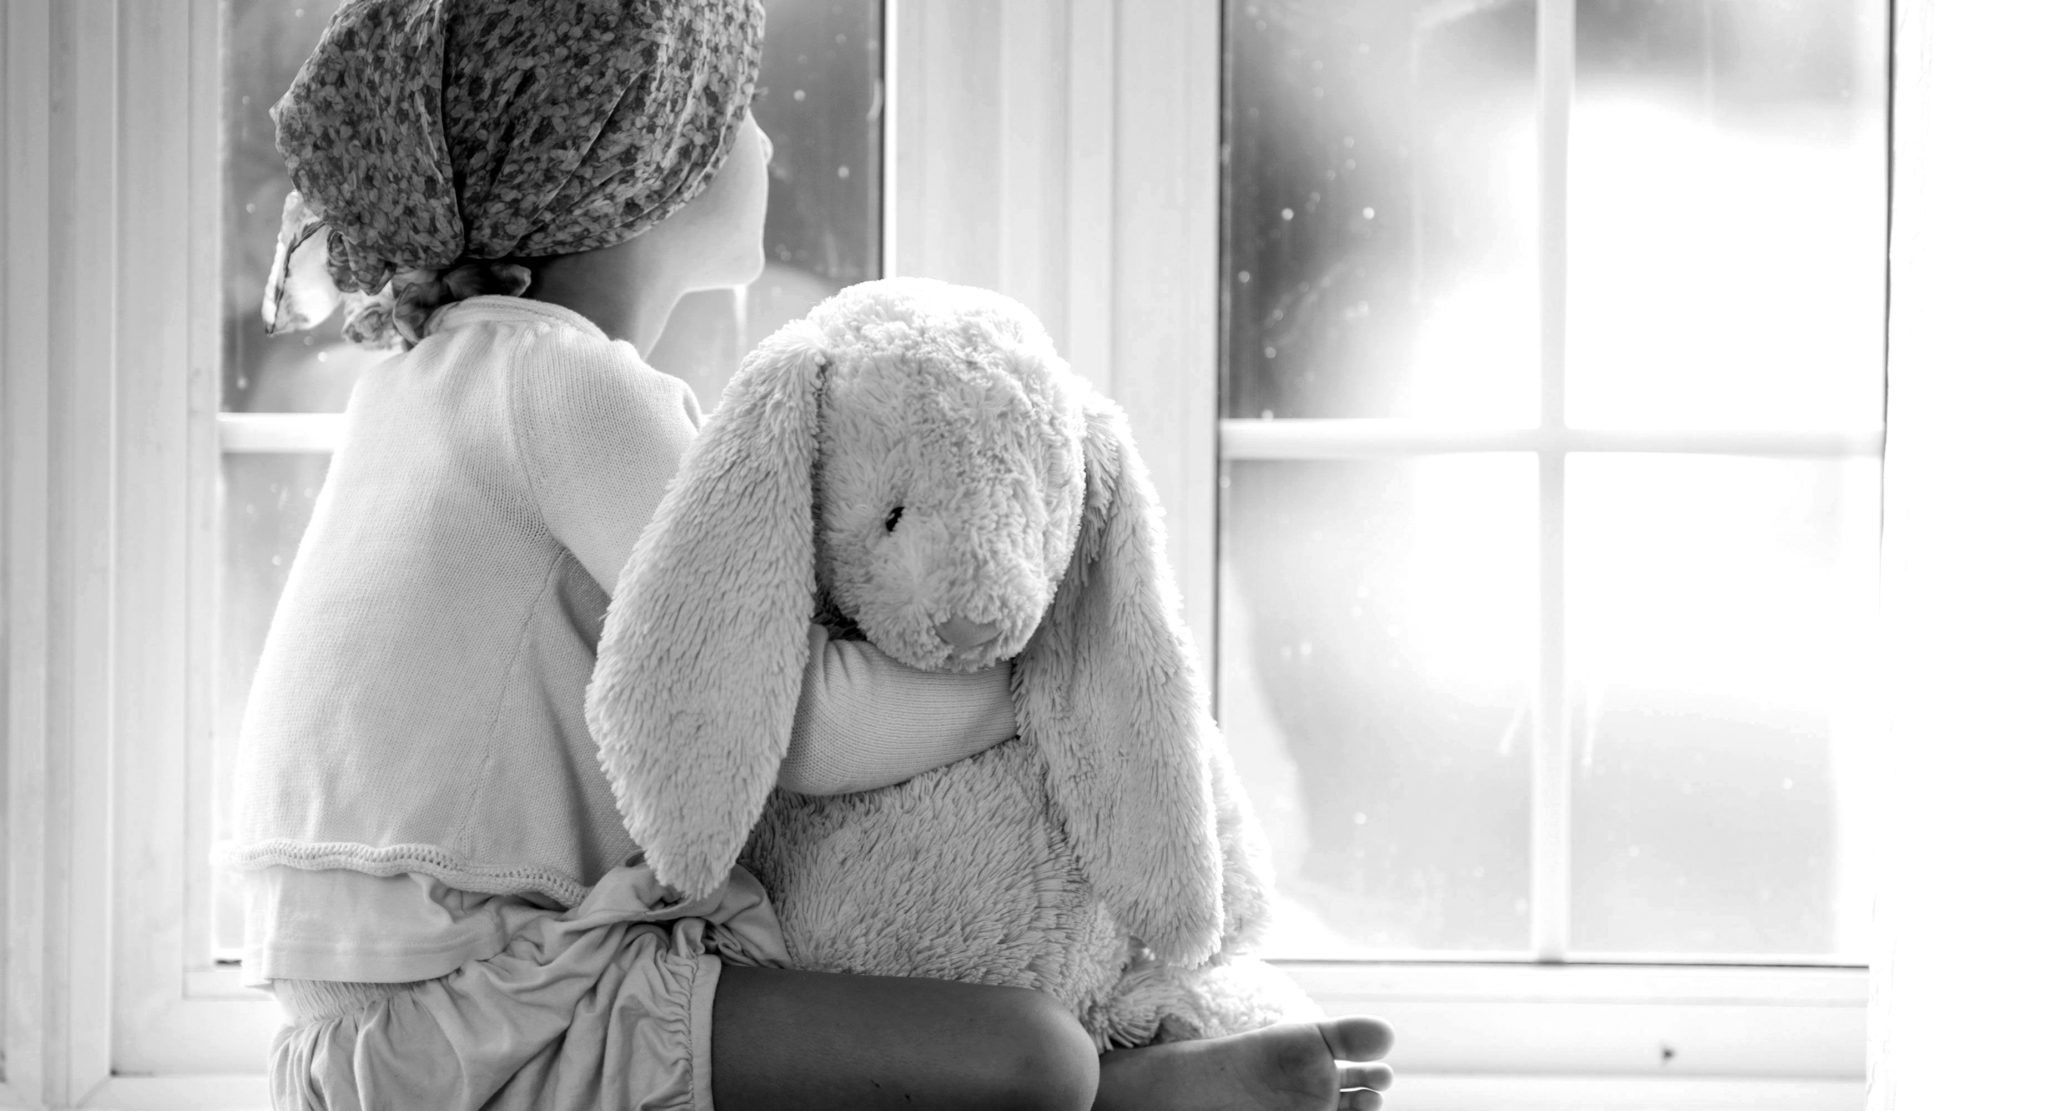 More than a million children in South Africa need palliative care and are denied it